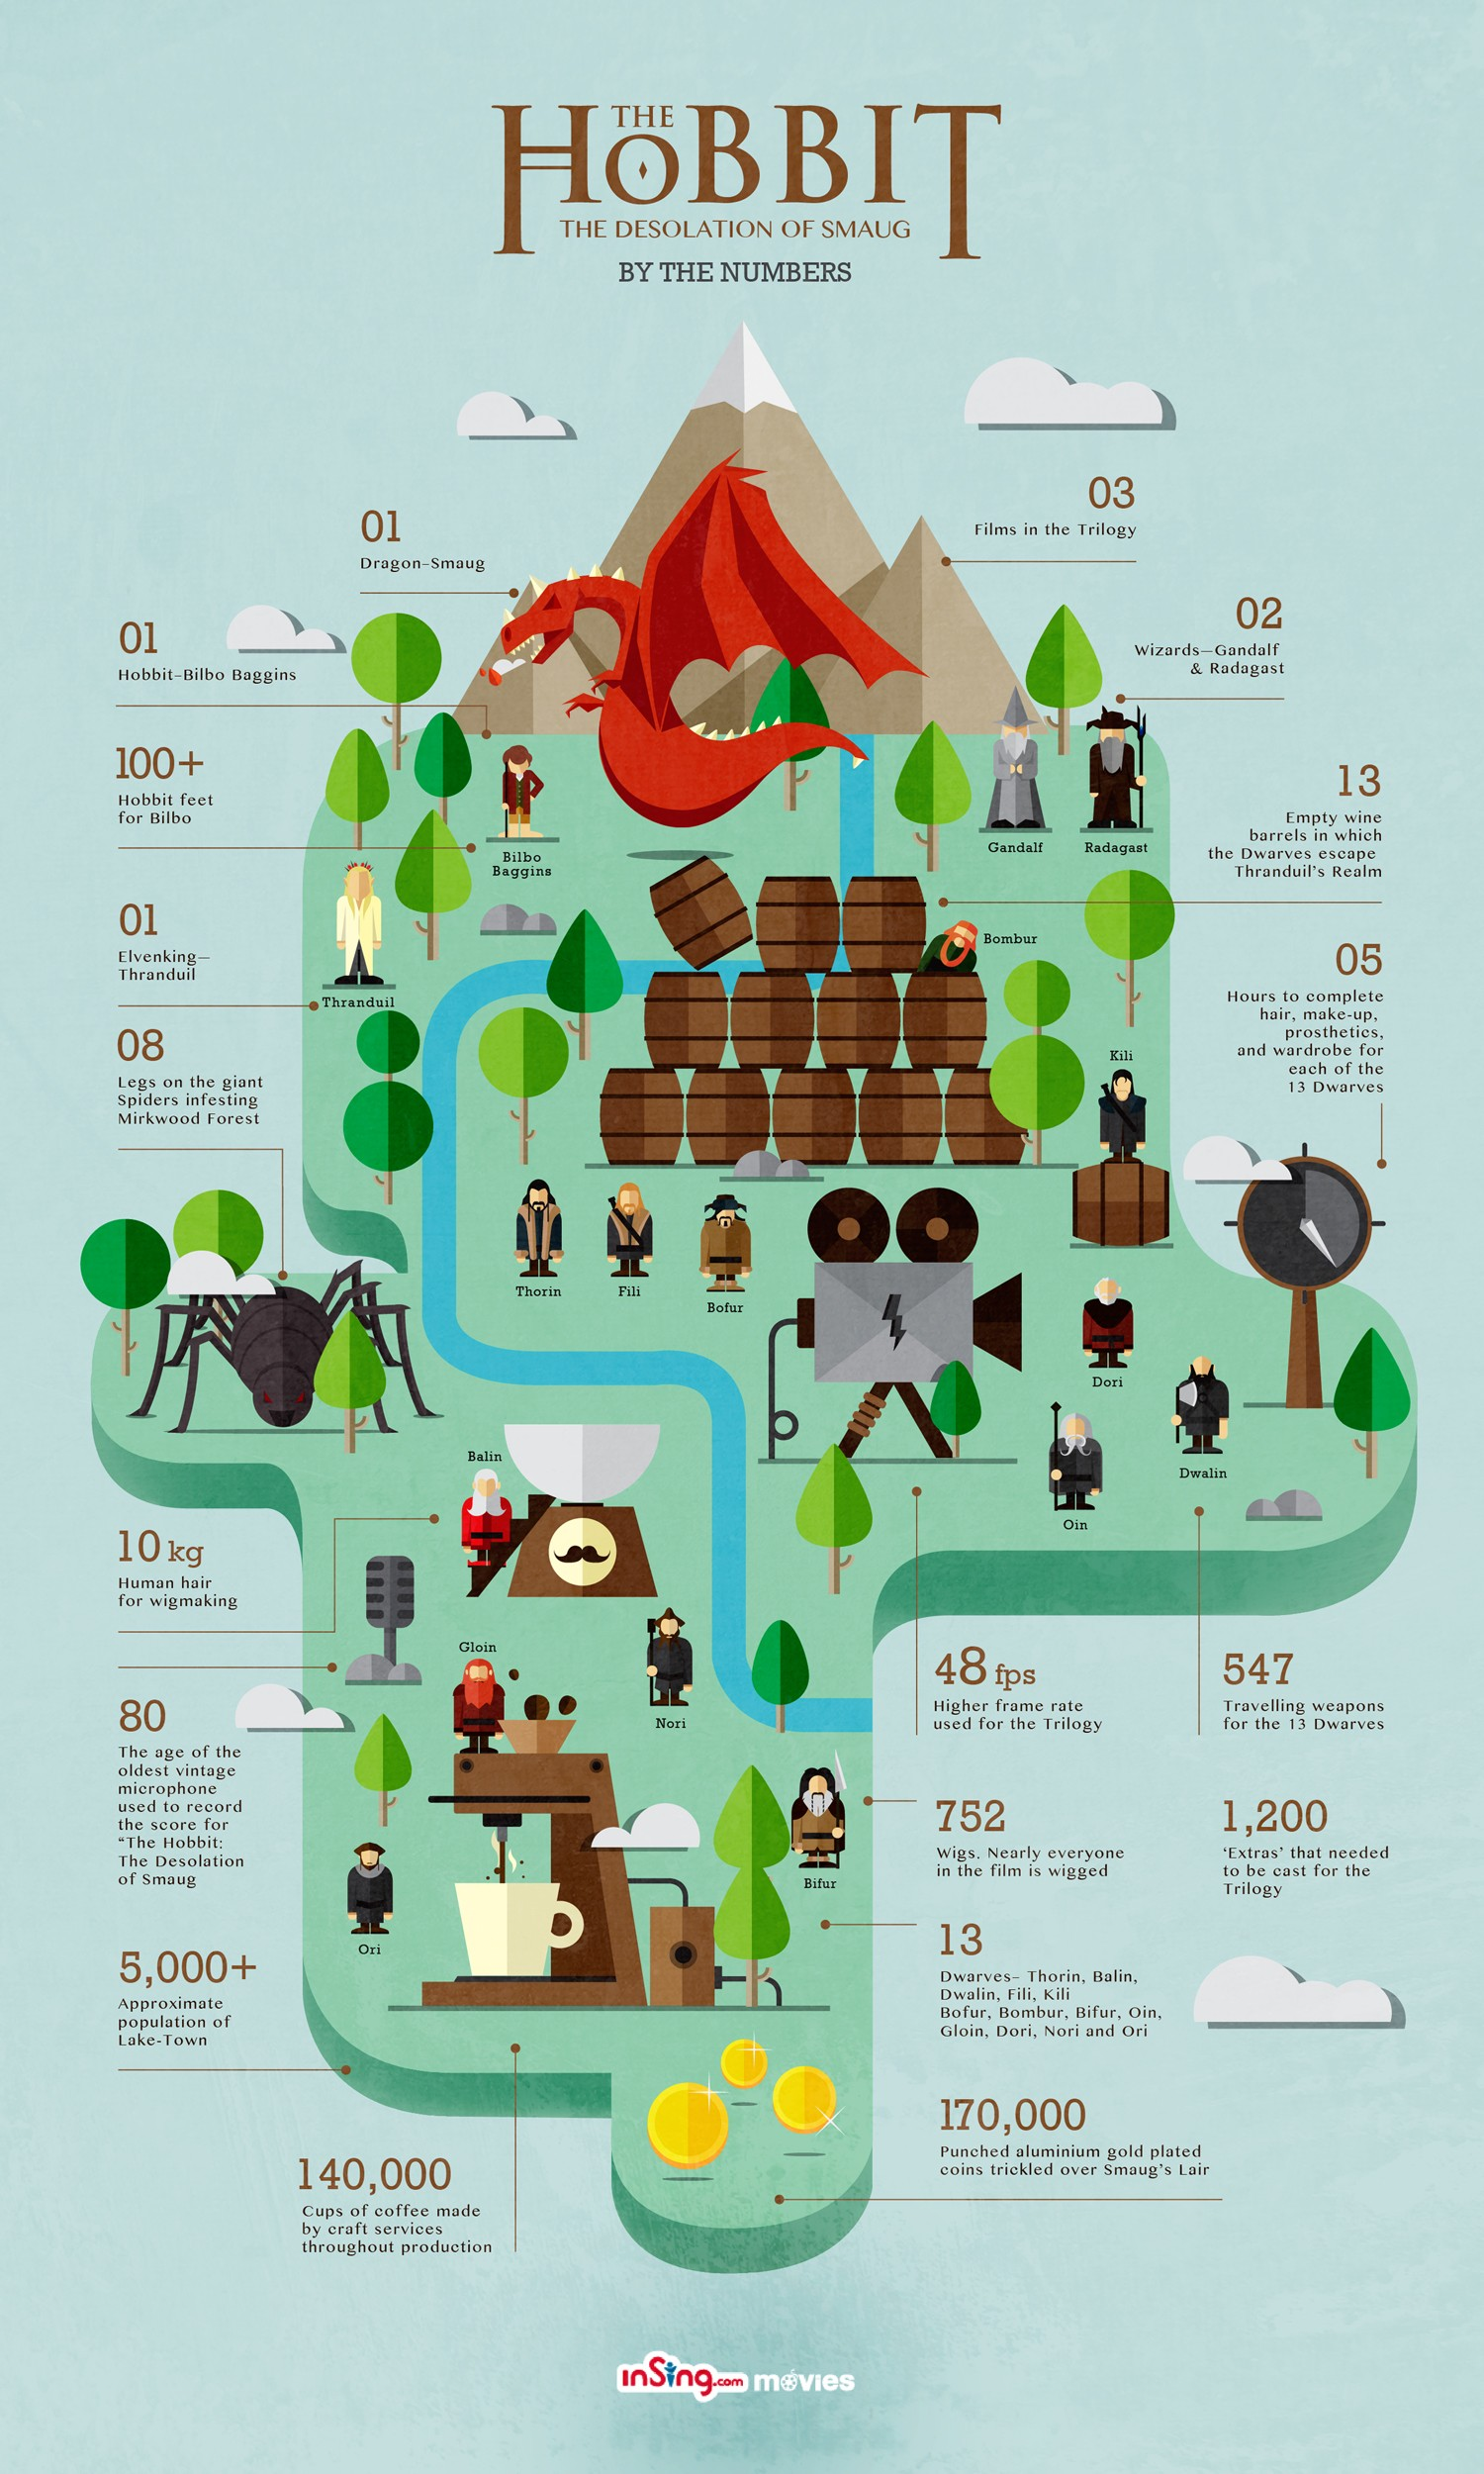 the-hobbit-the-desolation-of-smaug-by-the-numbers_52a7f45228263_w1500